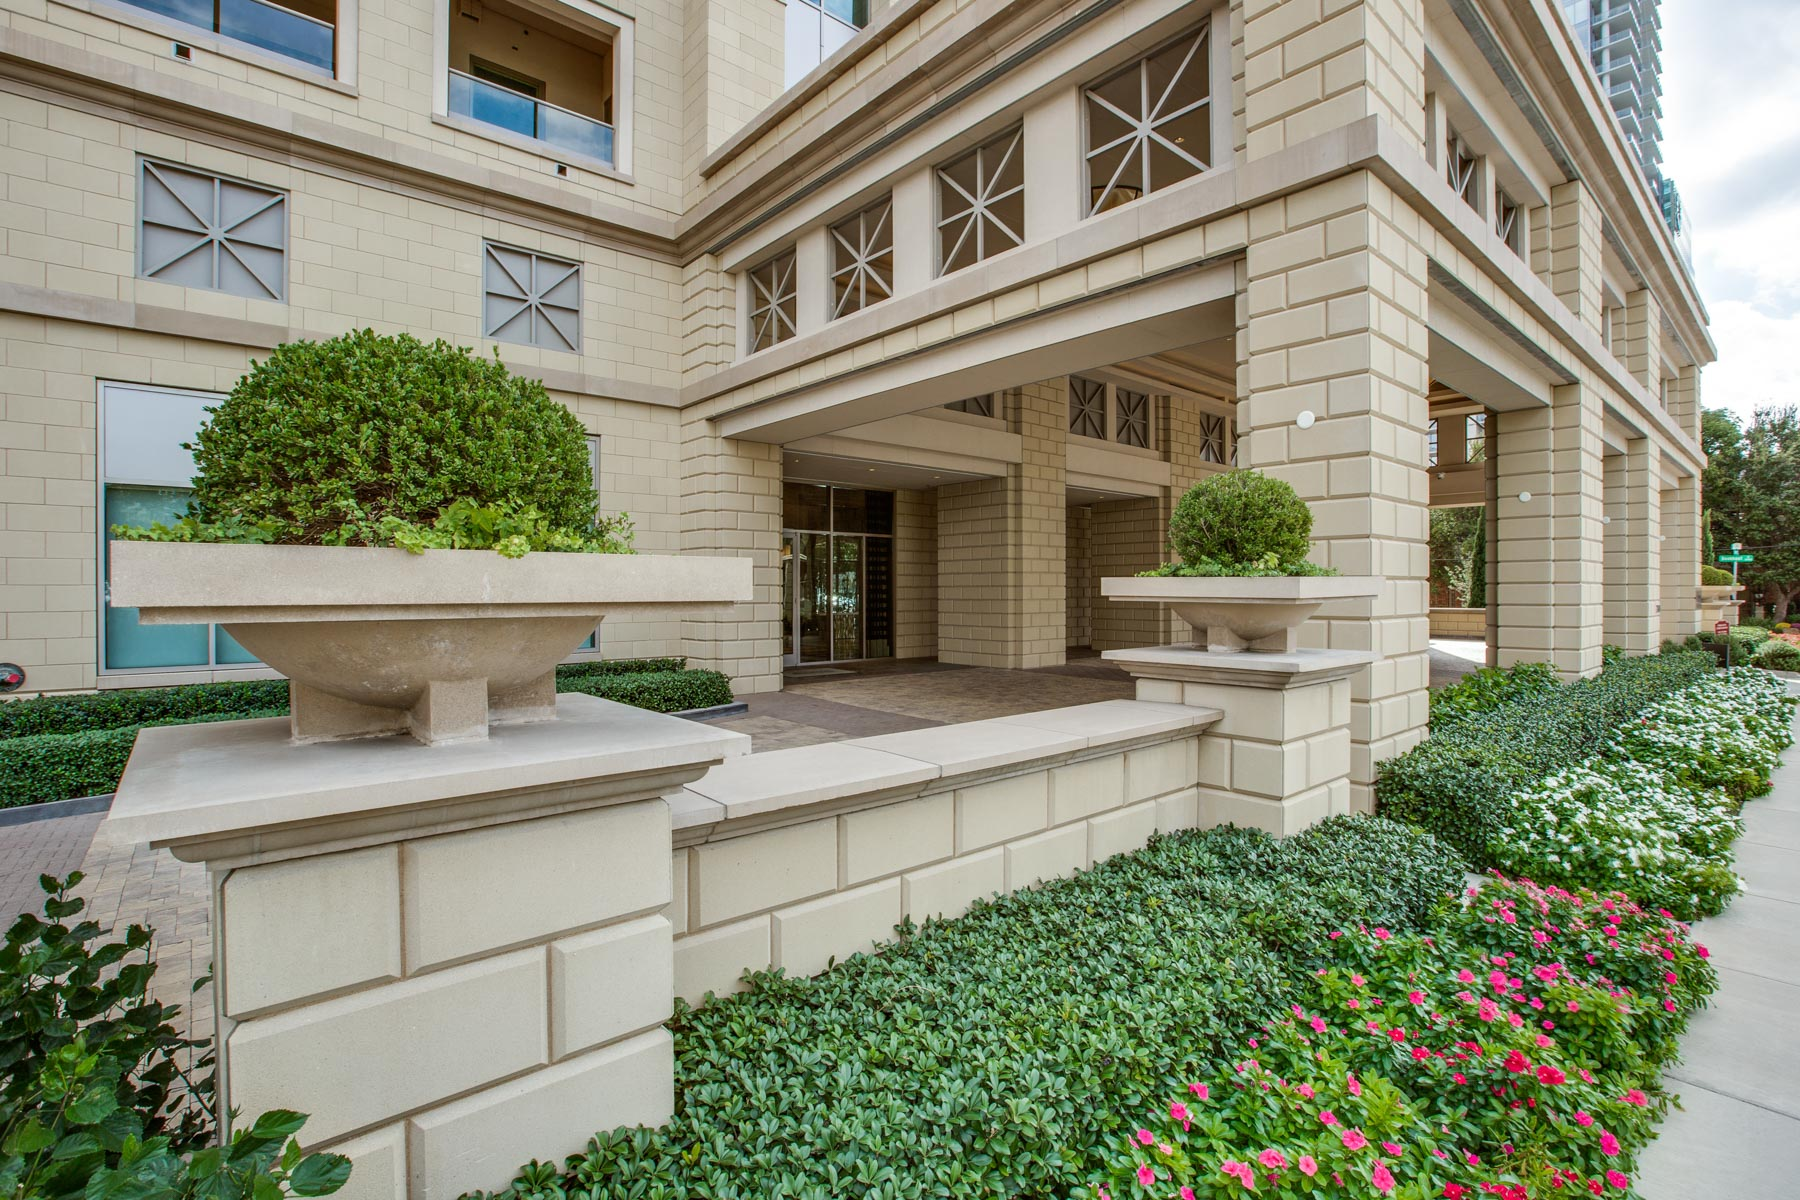 Condominium for Sale at 2300 Wolf Street 11D, Dallas 2300 Wolf St 11D Dallas, Texas, 75201 United States